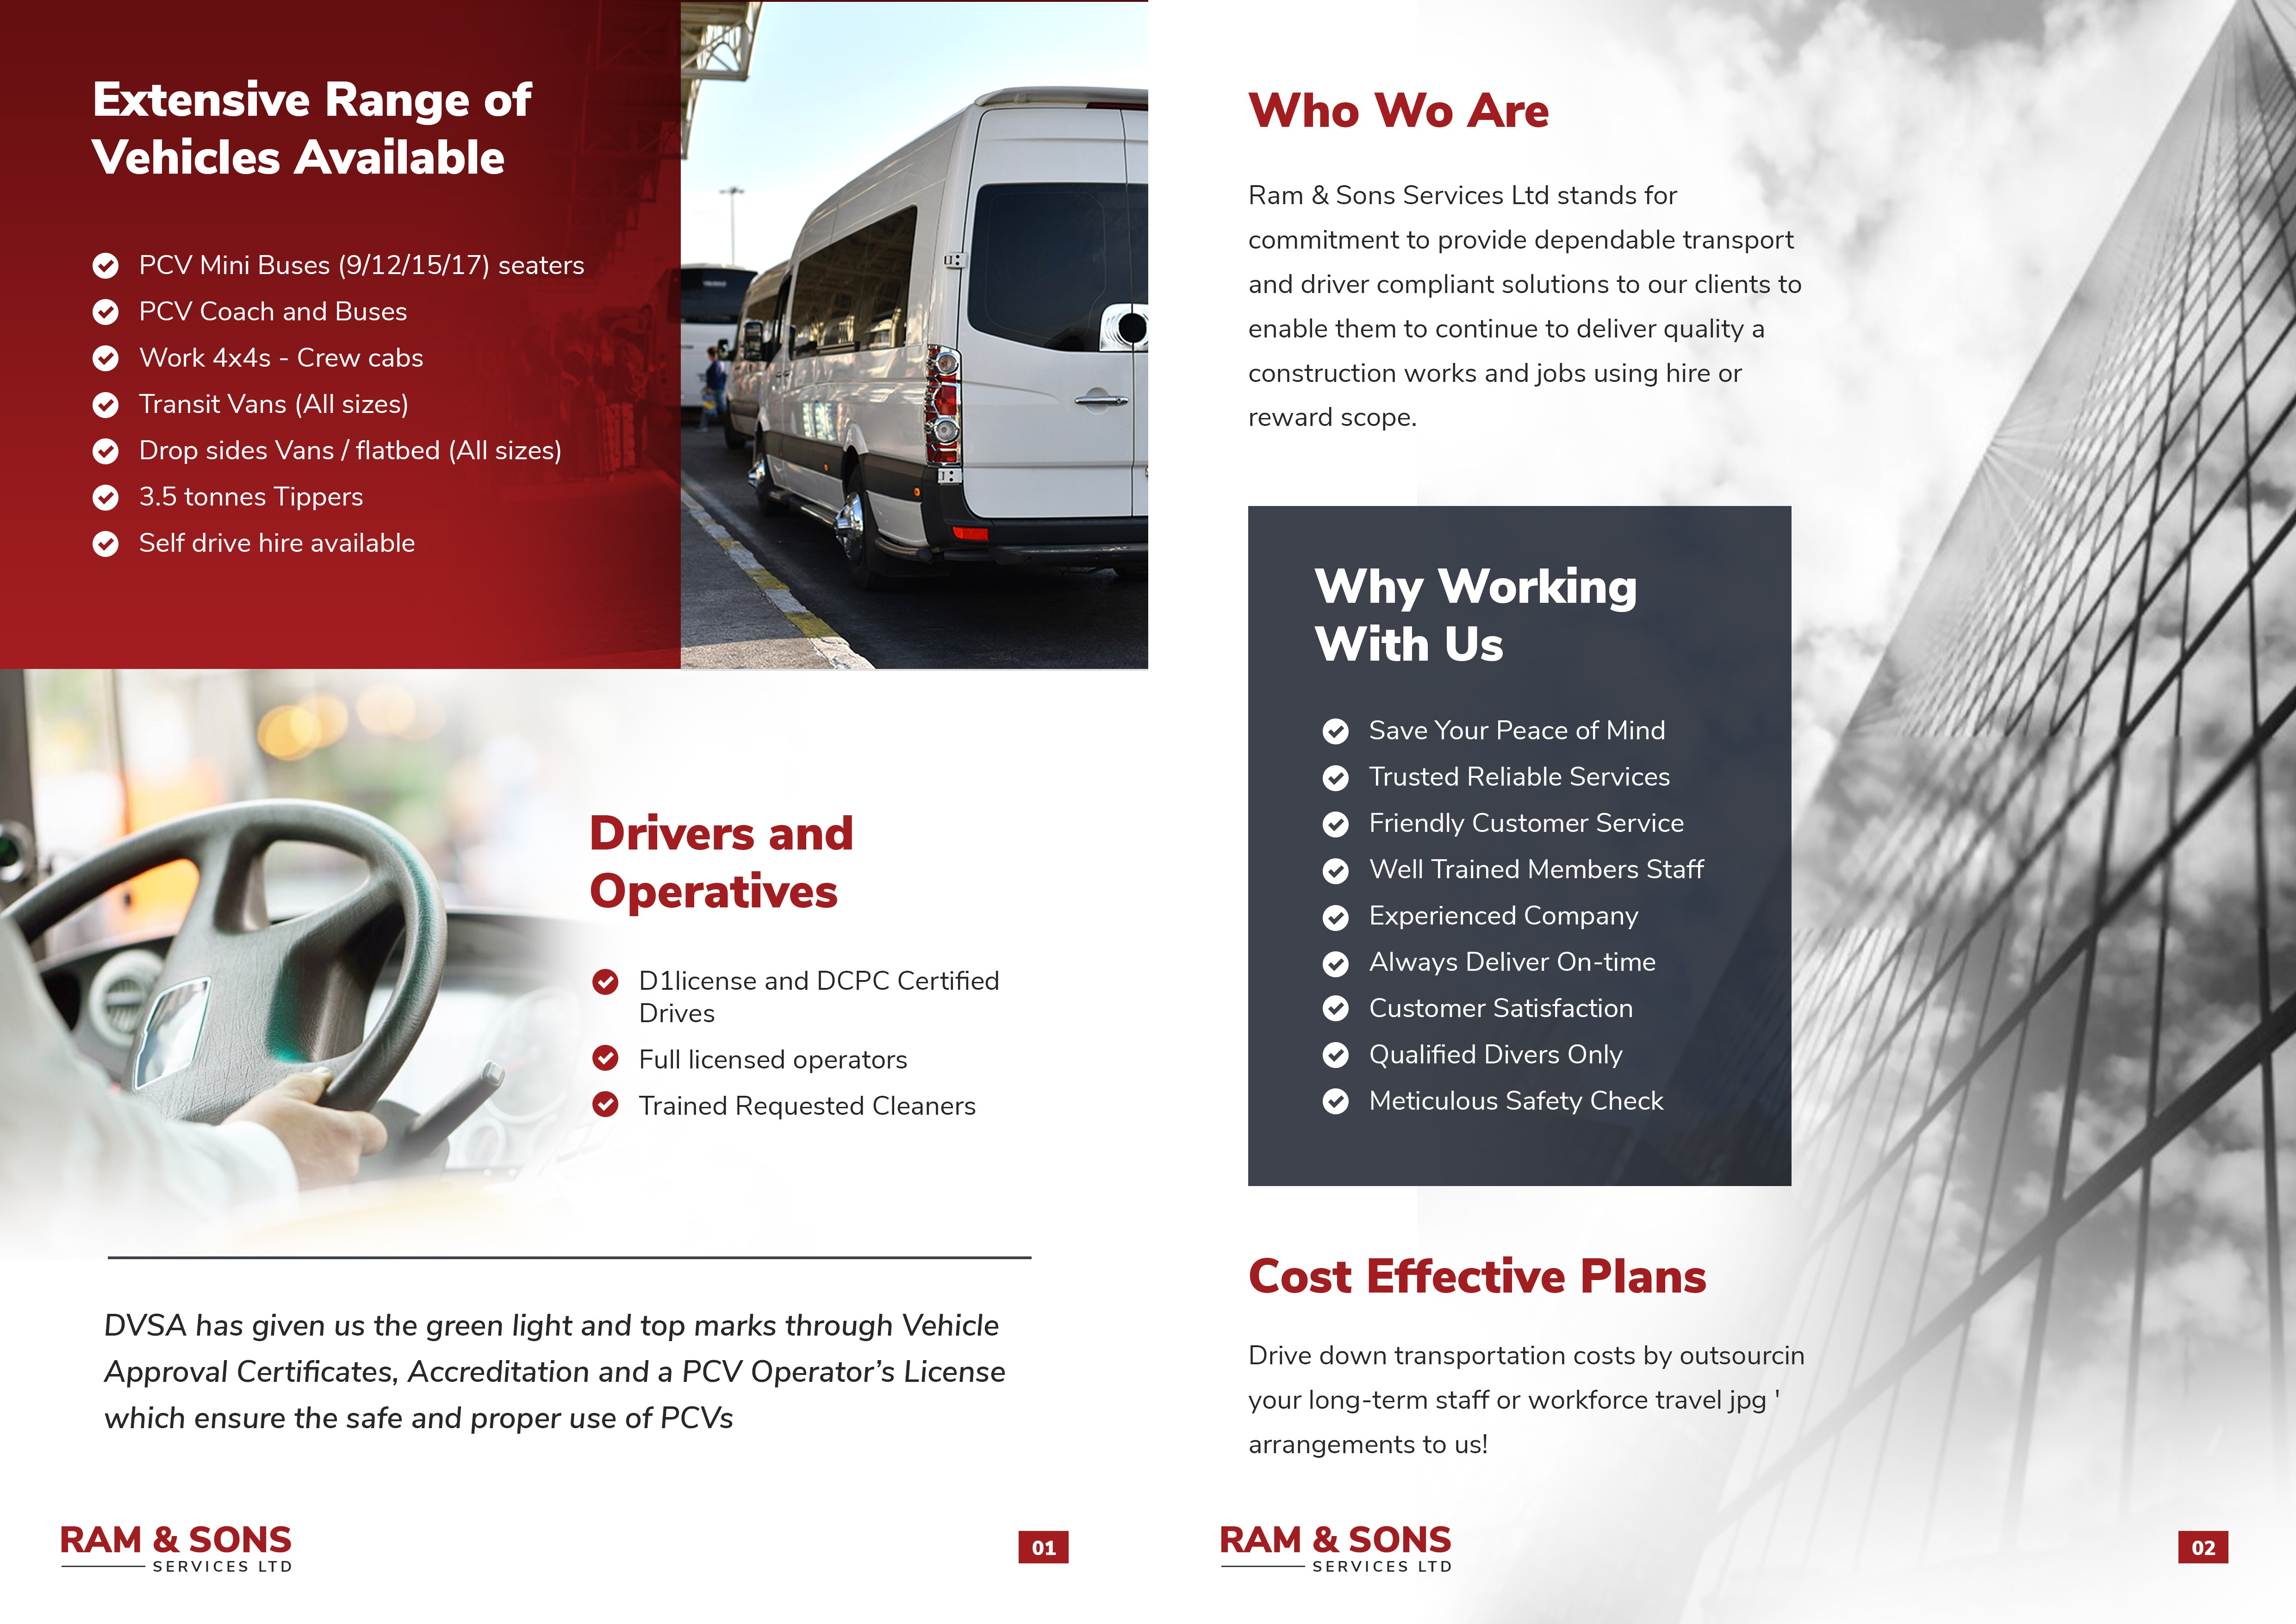 brochure for a leading company. professional. Information provided!!!